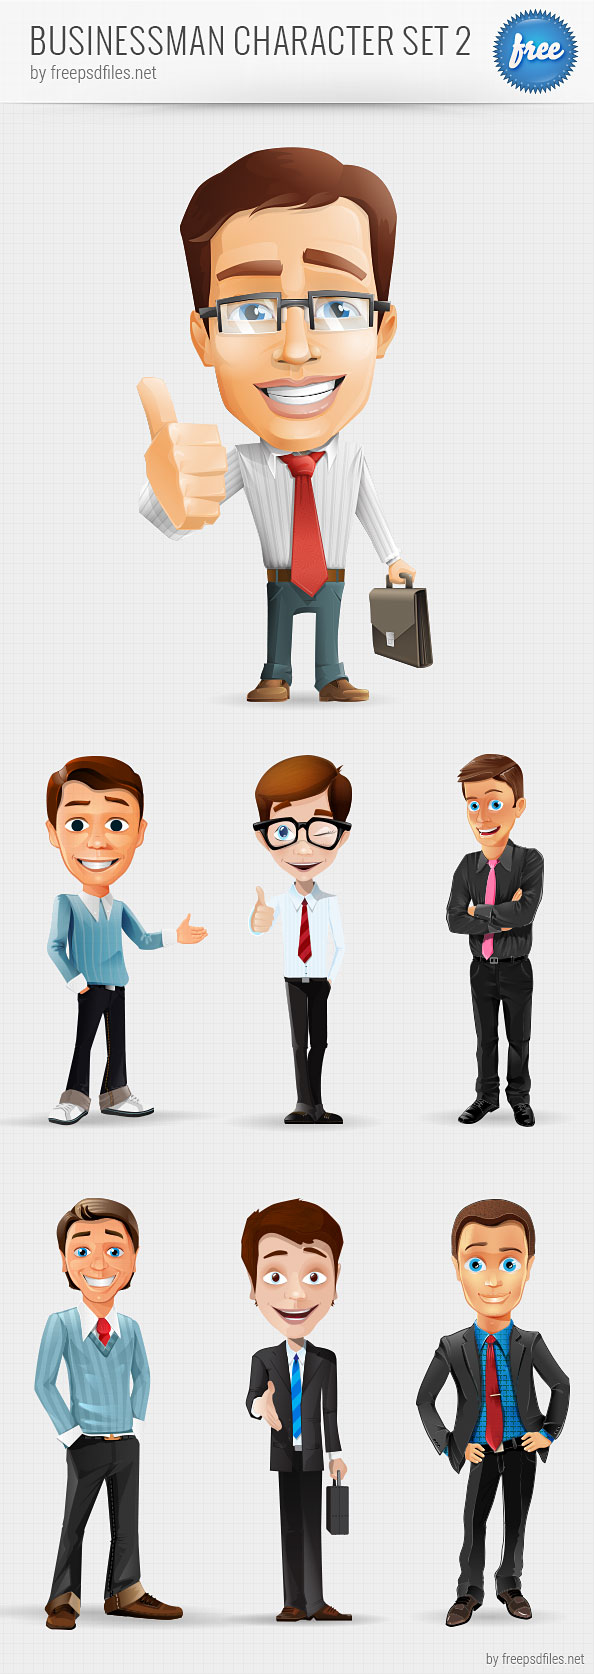 businessman-vector-character-set-2-image-1543Businessman_Vector_Character_Set_2_Preview_Big.jpg